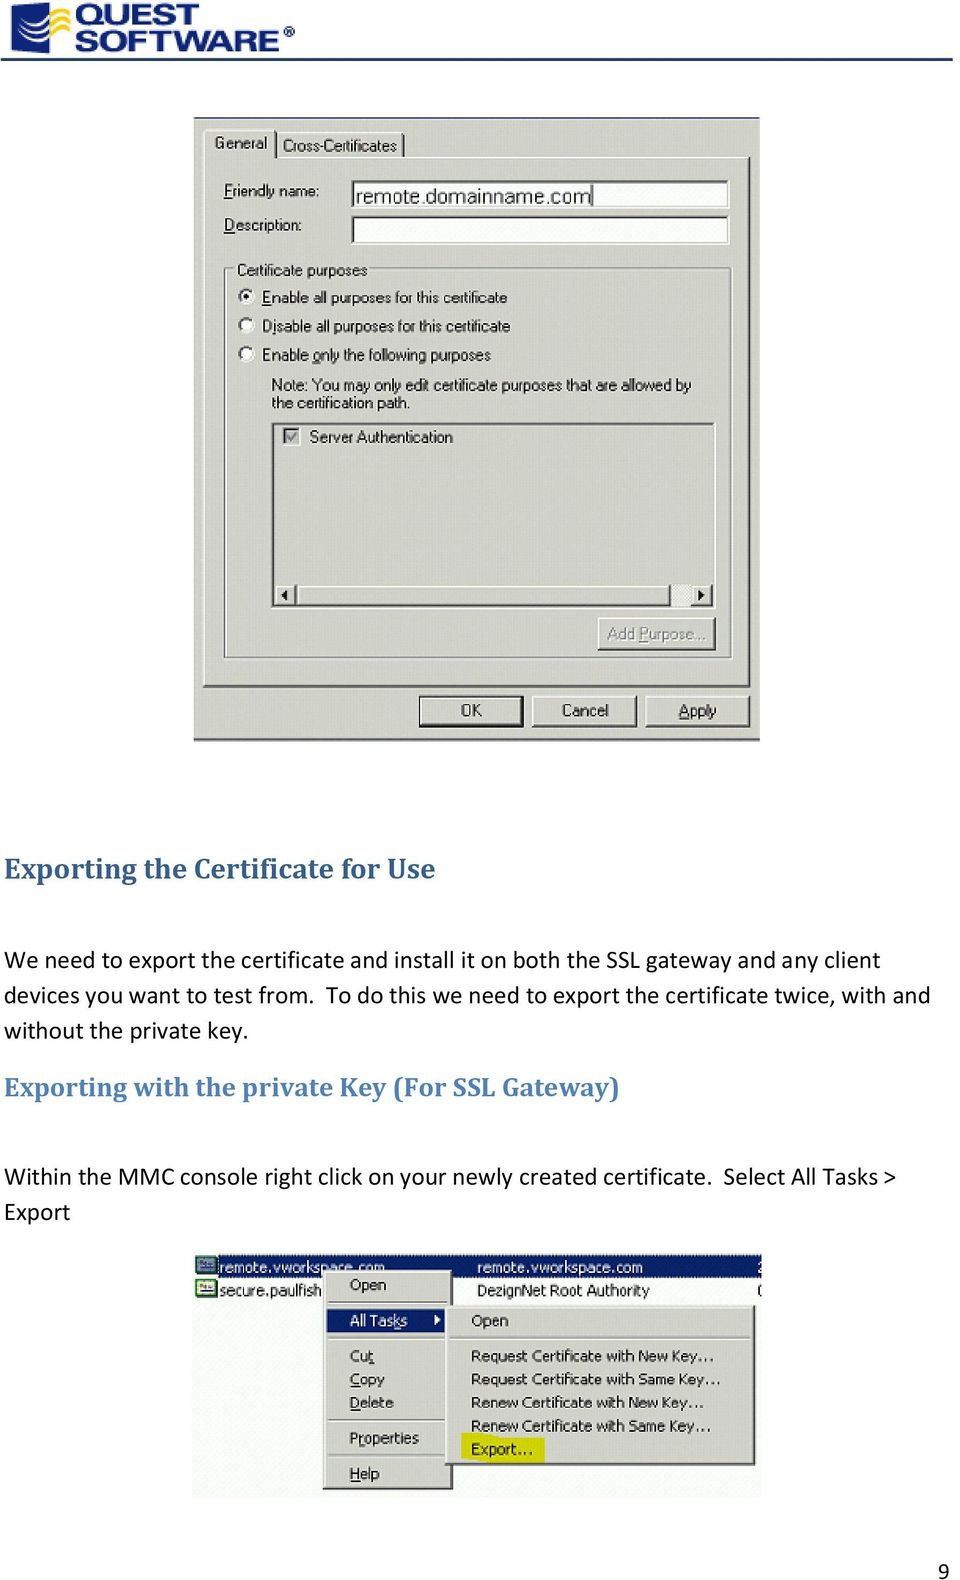 To do this we need to export the certificate twice, with and without the private key.